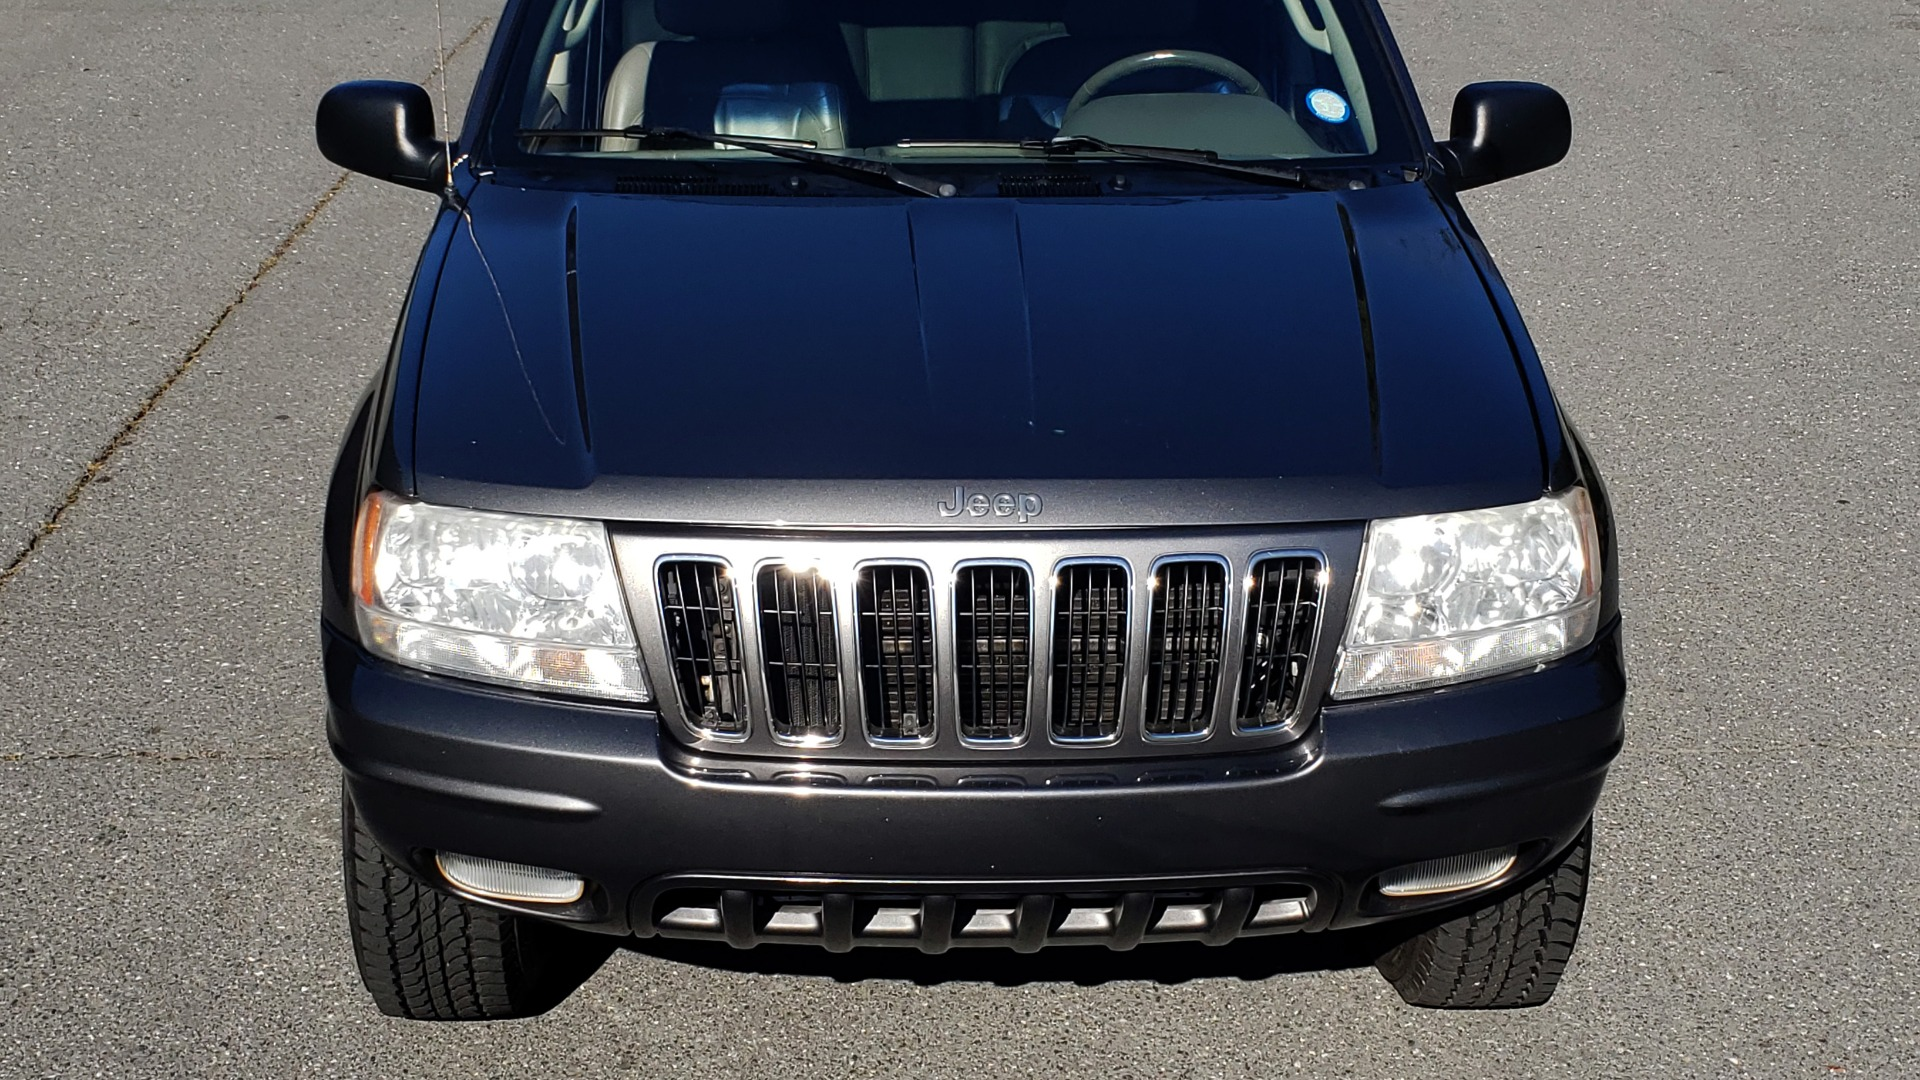 Used 2002 Jeep GRAND CHEROKEE LIMITED 4X4 / SUNROOF / 4.7L V8 / 5-SPD AUTO / CLD WTHR for sale Sold at Formula Imports in Charlotte NC 28227 27